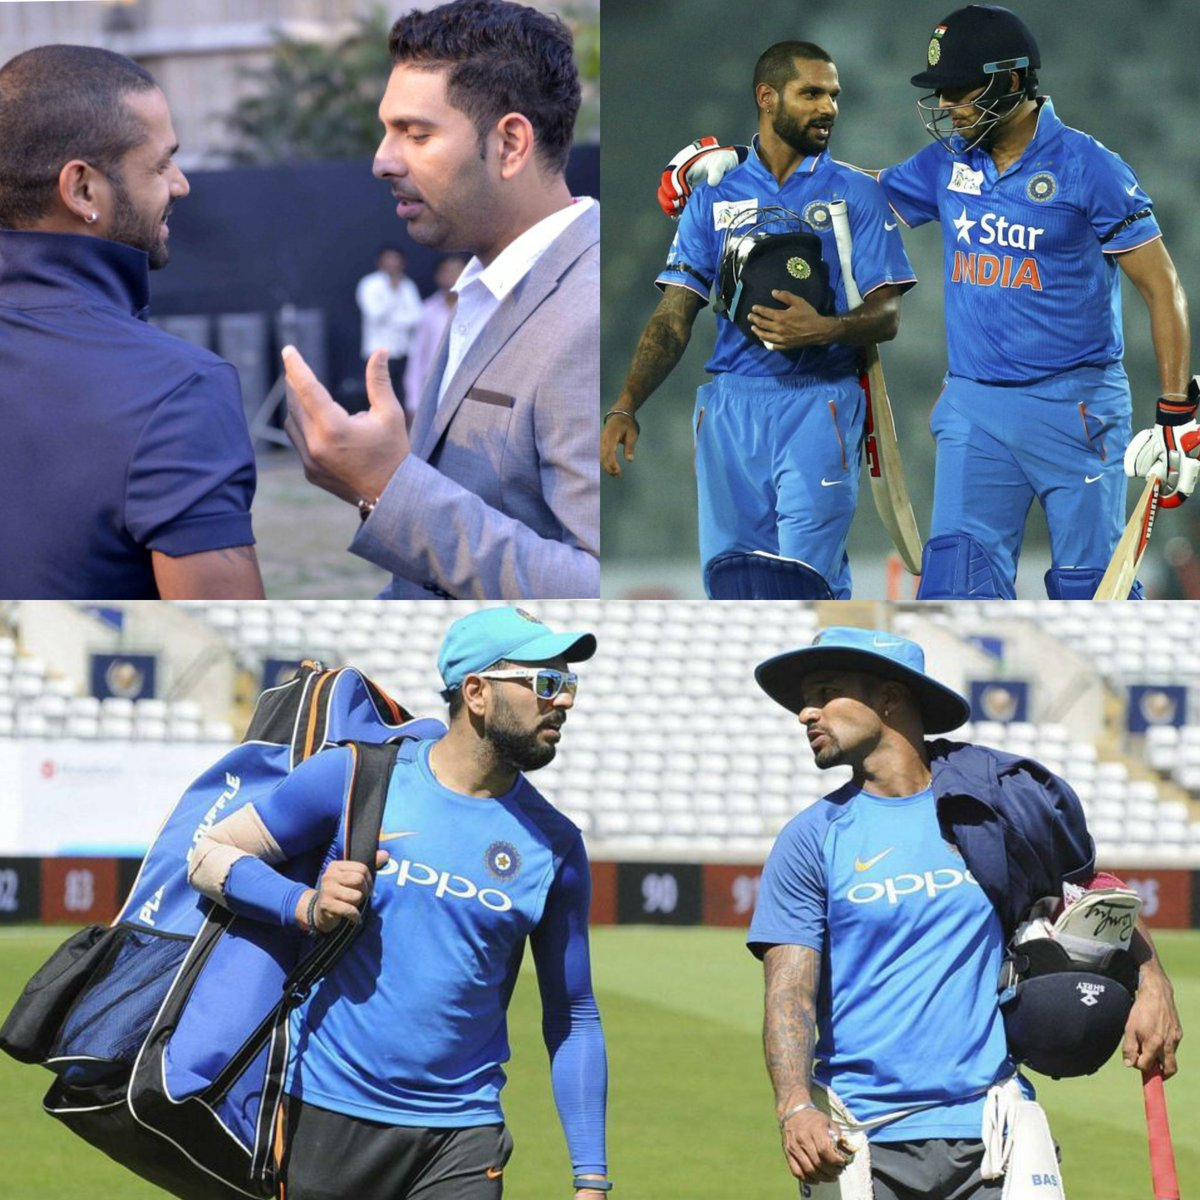 Thank you, Yuvi paaji for all the guidance, support & love. ♥ You are one of the best left-handed batsmen I have come across. I always looked up to your style & batting technique, have learnt so much from you! Wish you prosperity & success in your new journey. Rab rakha 💪🏻